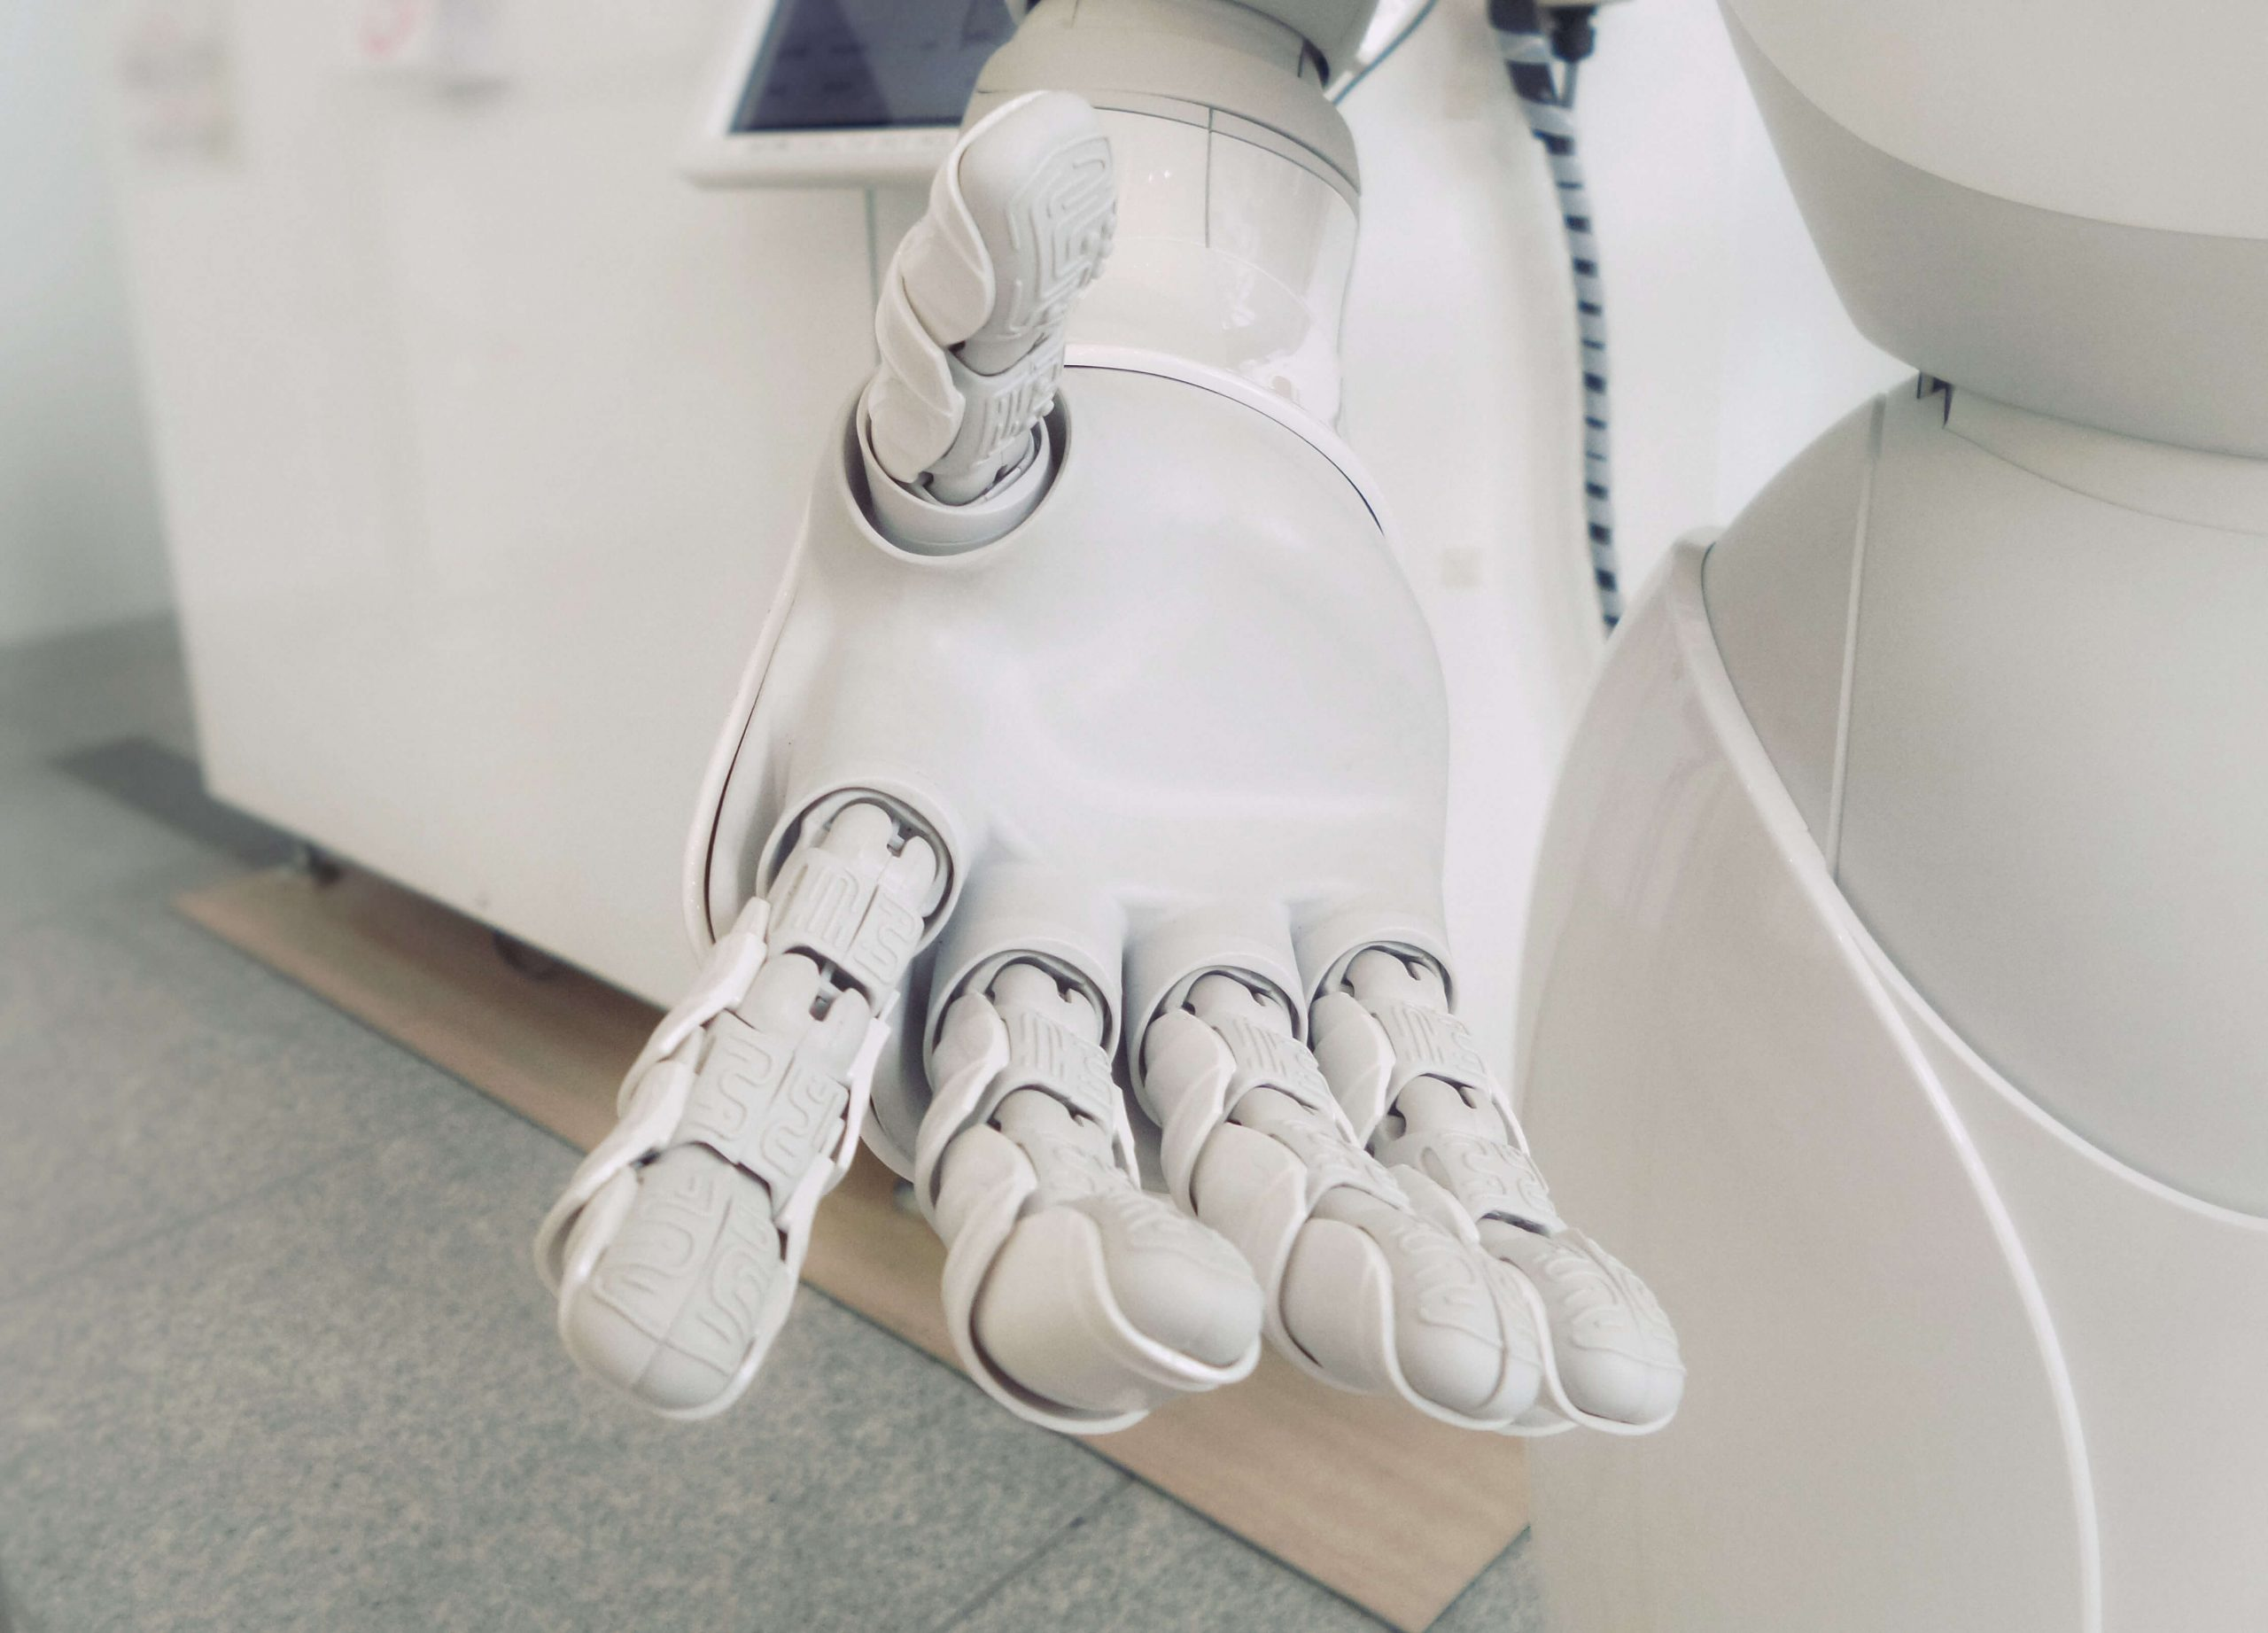 Close-up image of a white robotic hand.